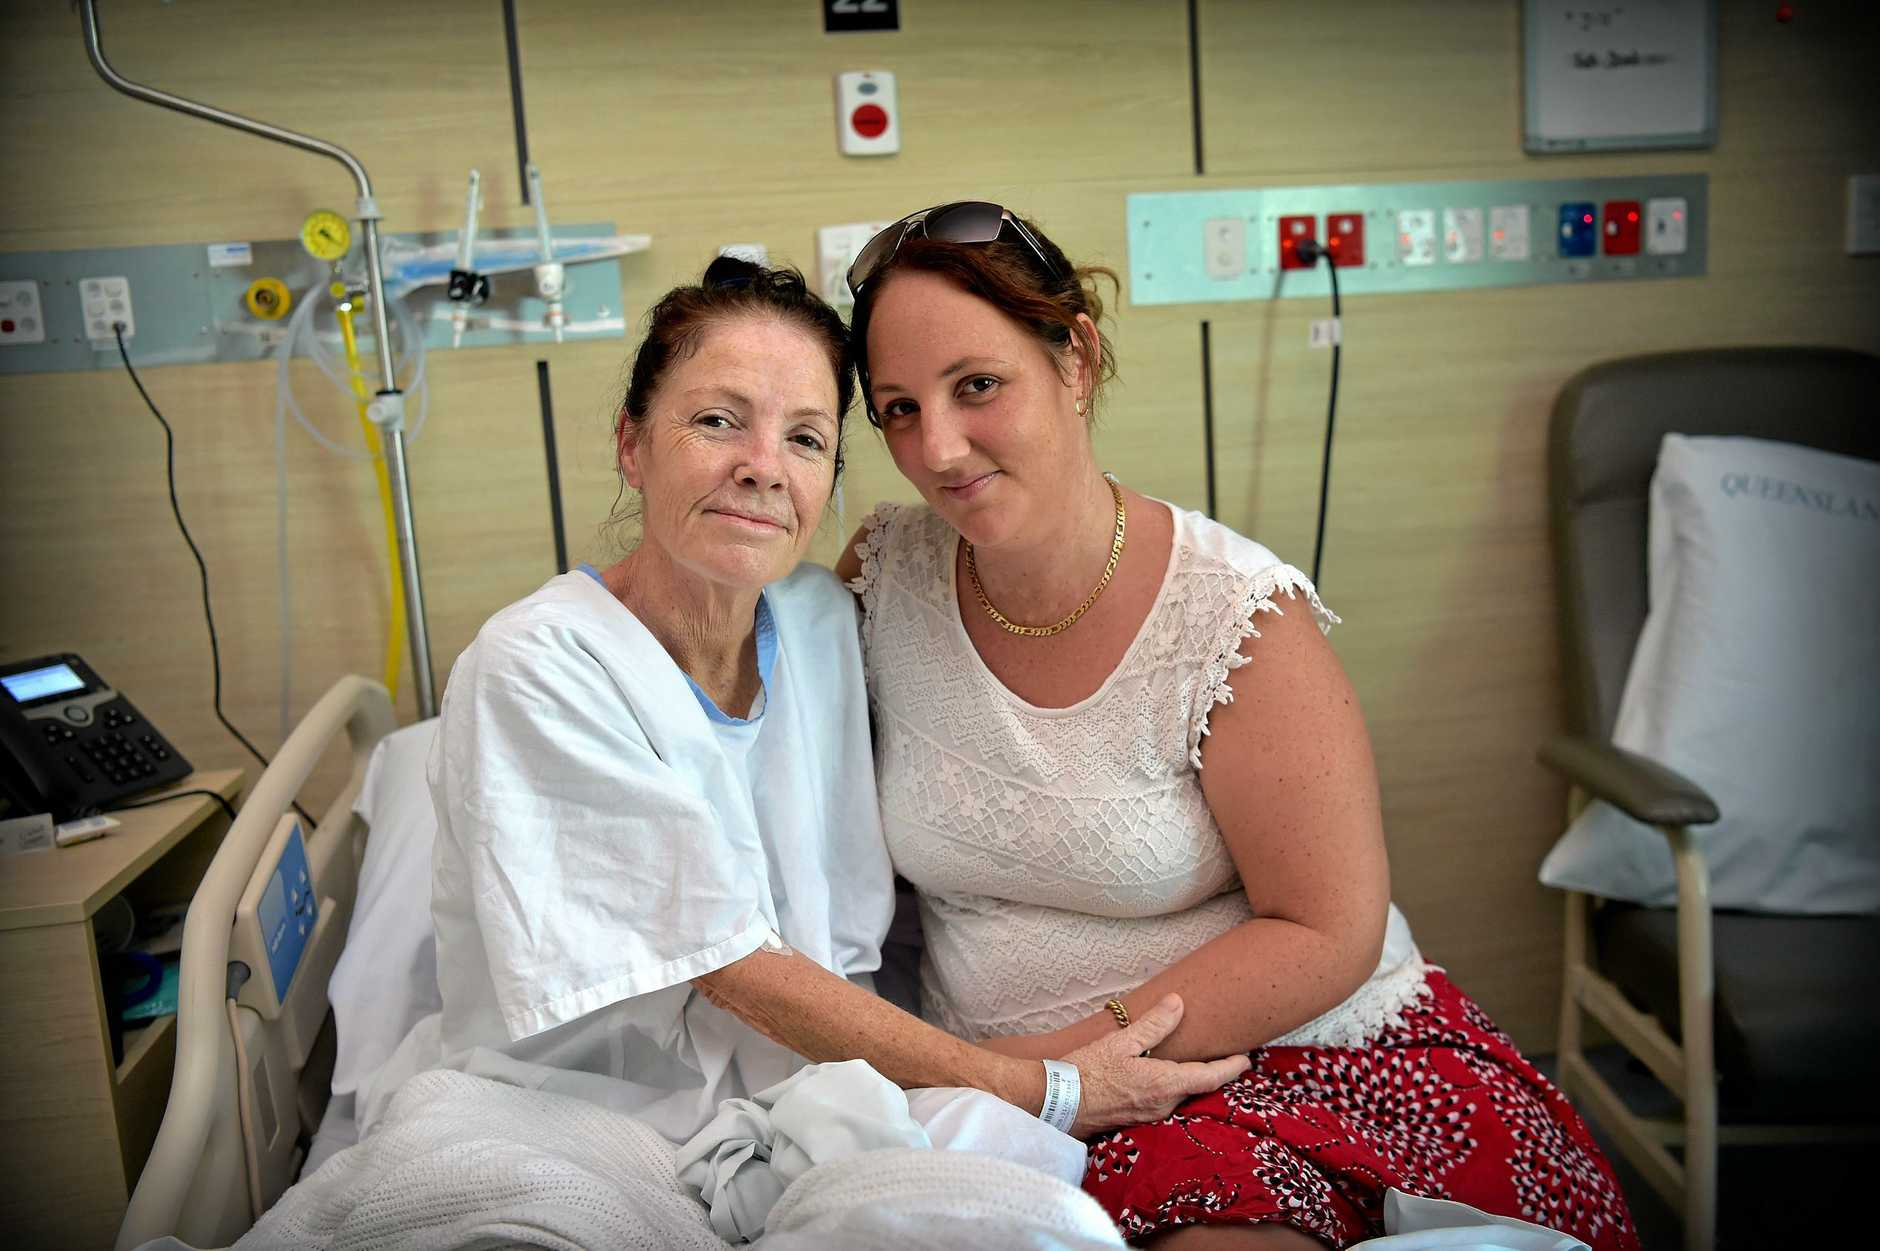 Irene Cryer (Jill) is recovering in hospital after her rare illness. Pictured with her daughter Amy